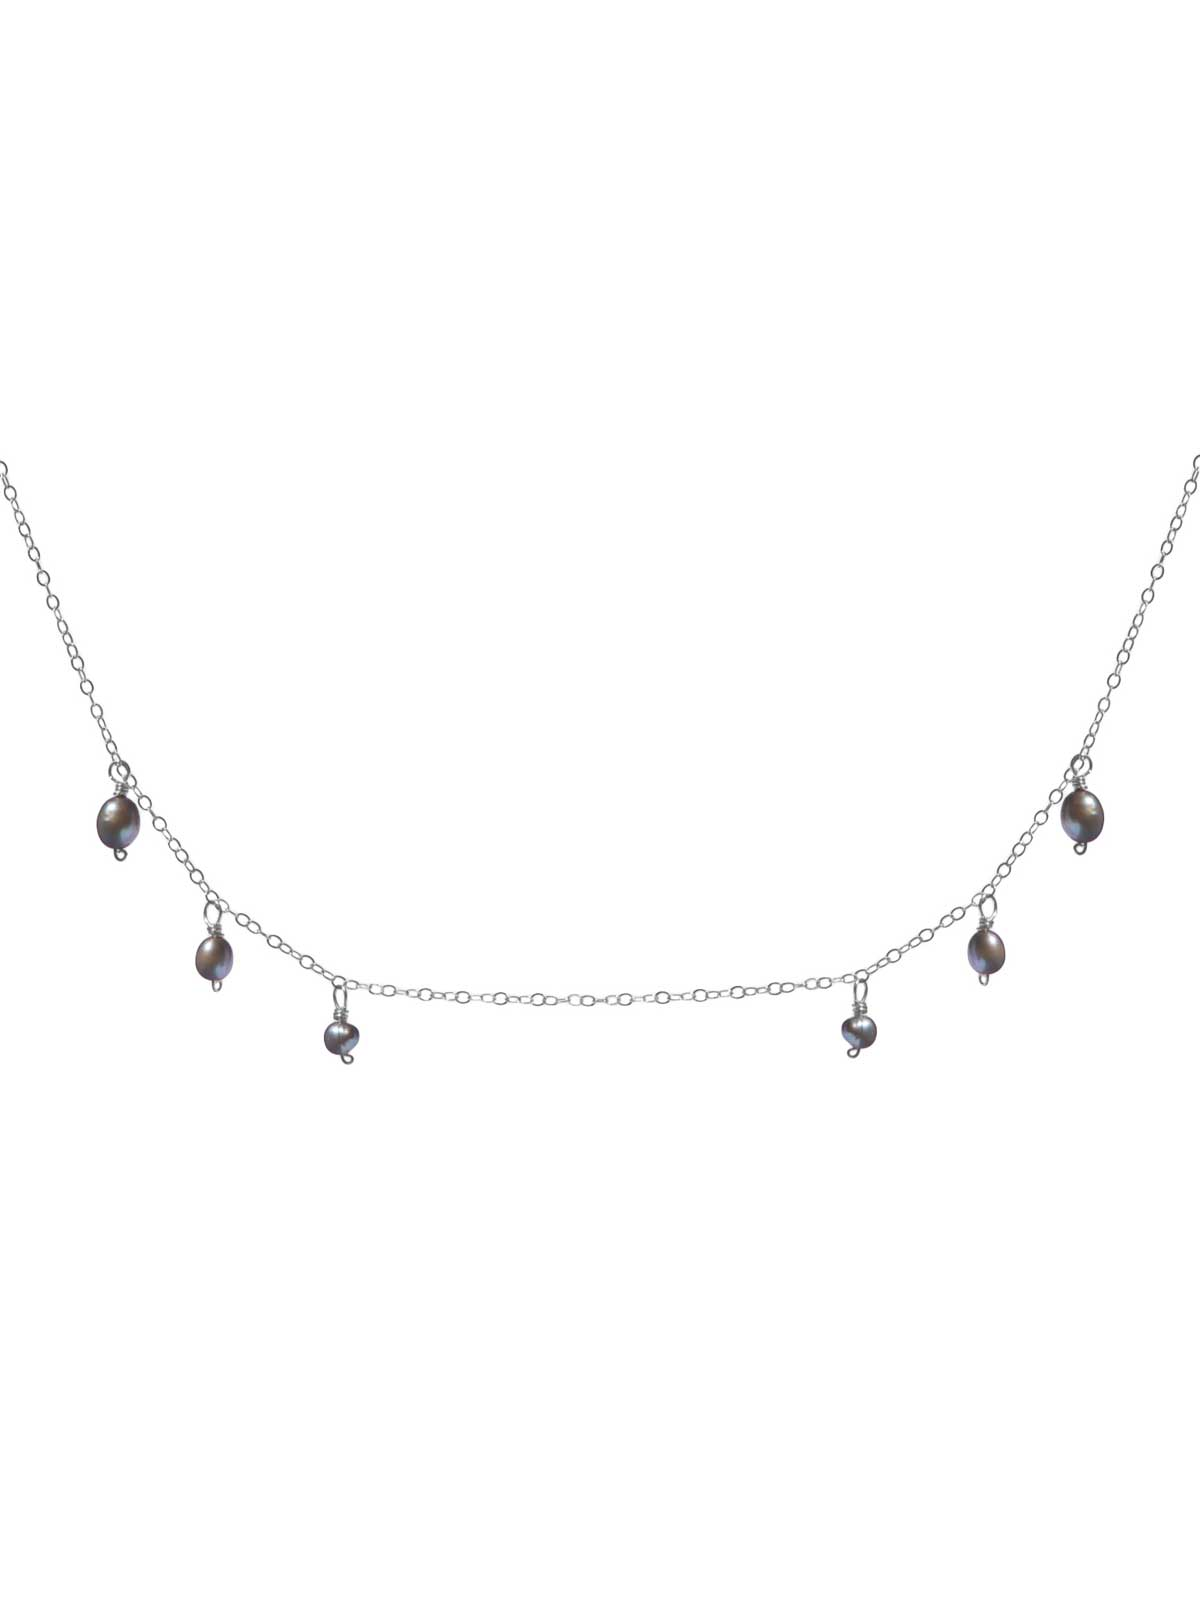 Necklace in Sterling Silver chain with gray Freshwater Pearls